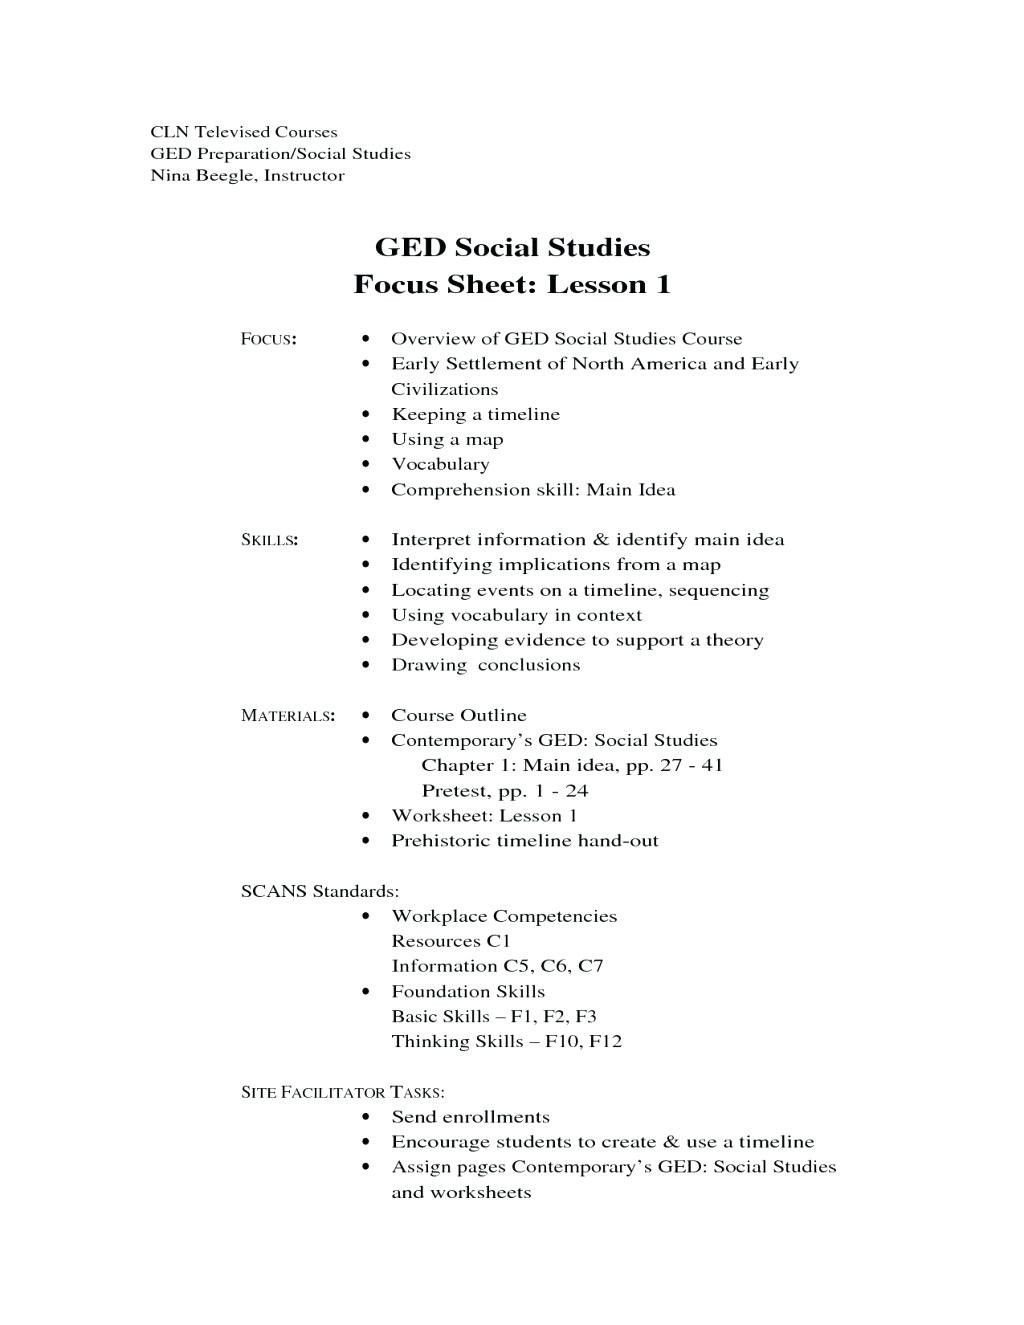 Social Studies Ged Practice Worksheets 1 Ged social Stu S Map Worksheets Printable Ged social